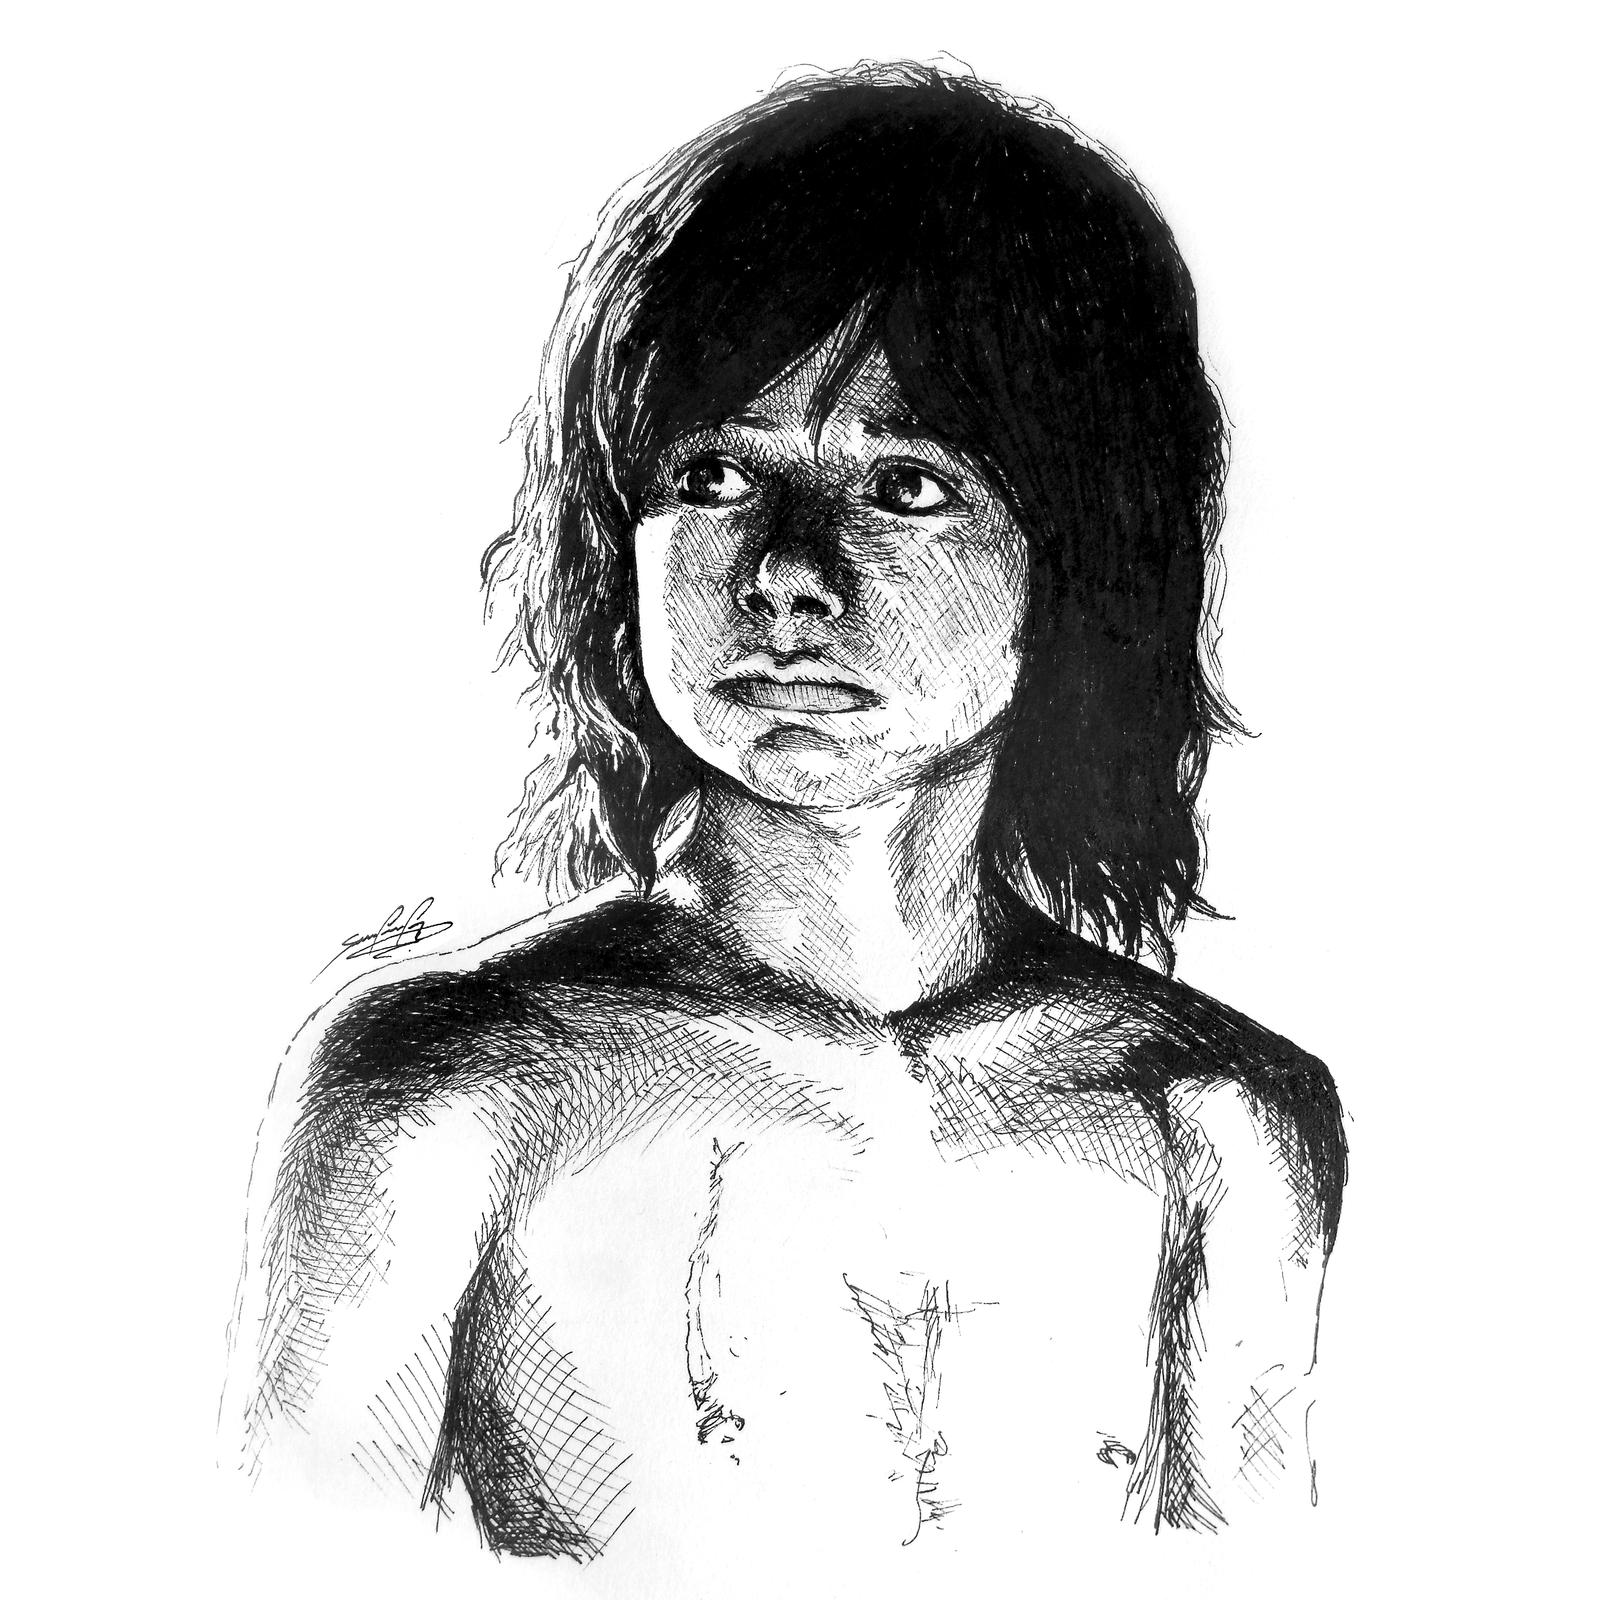 Mowgli - The Jungle Book.